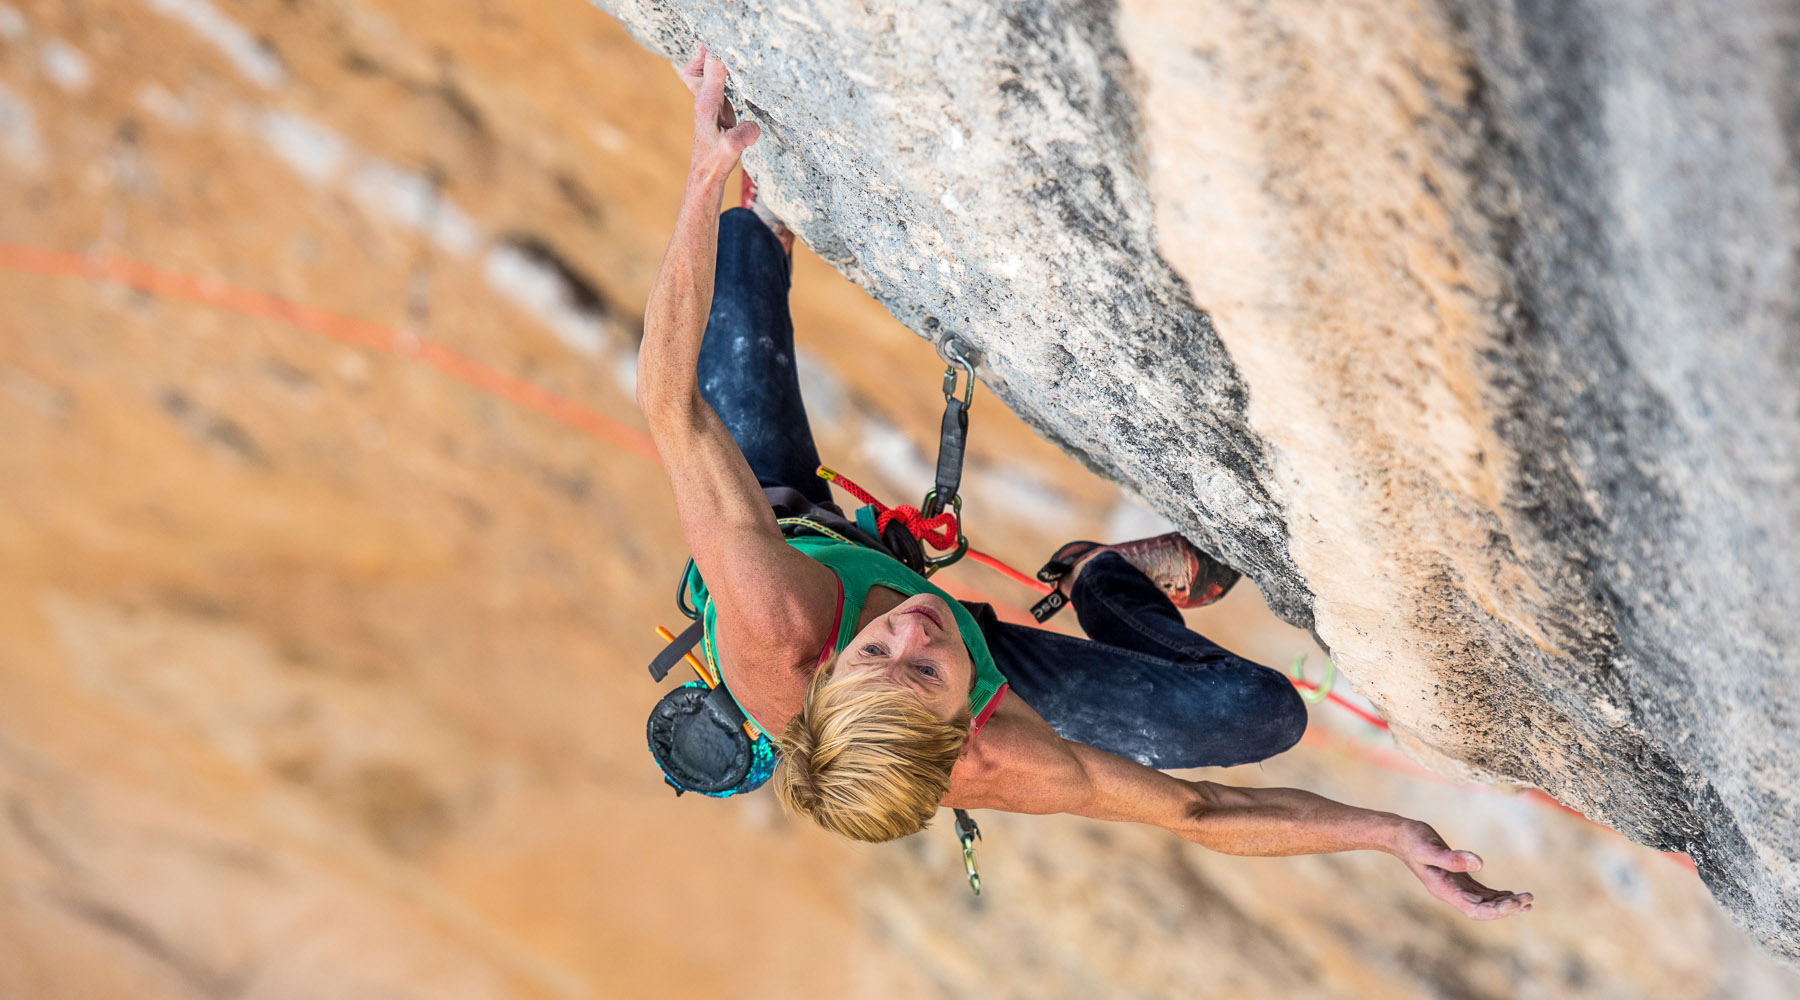 Monique Forestier, Mind Control (8c+, 34), Oliana, Spain.